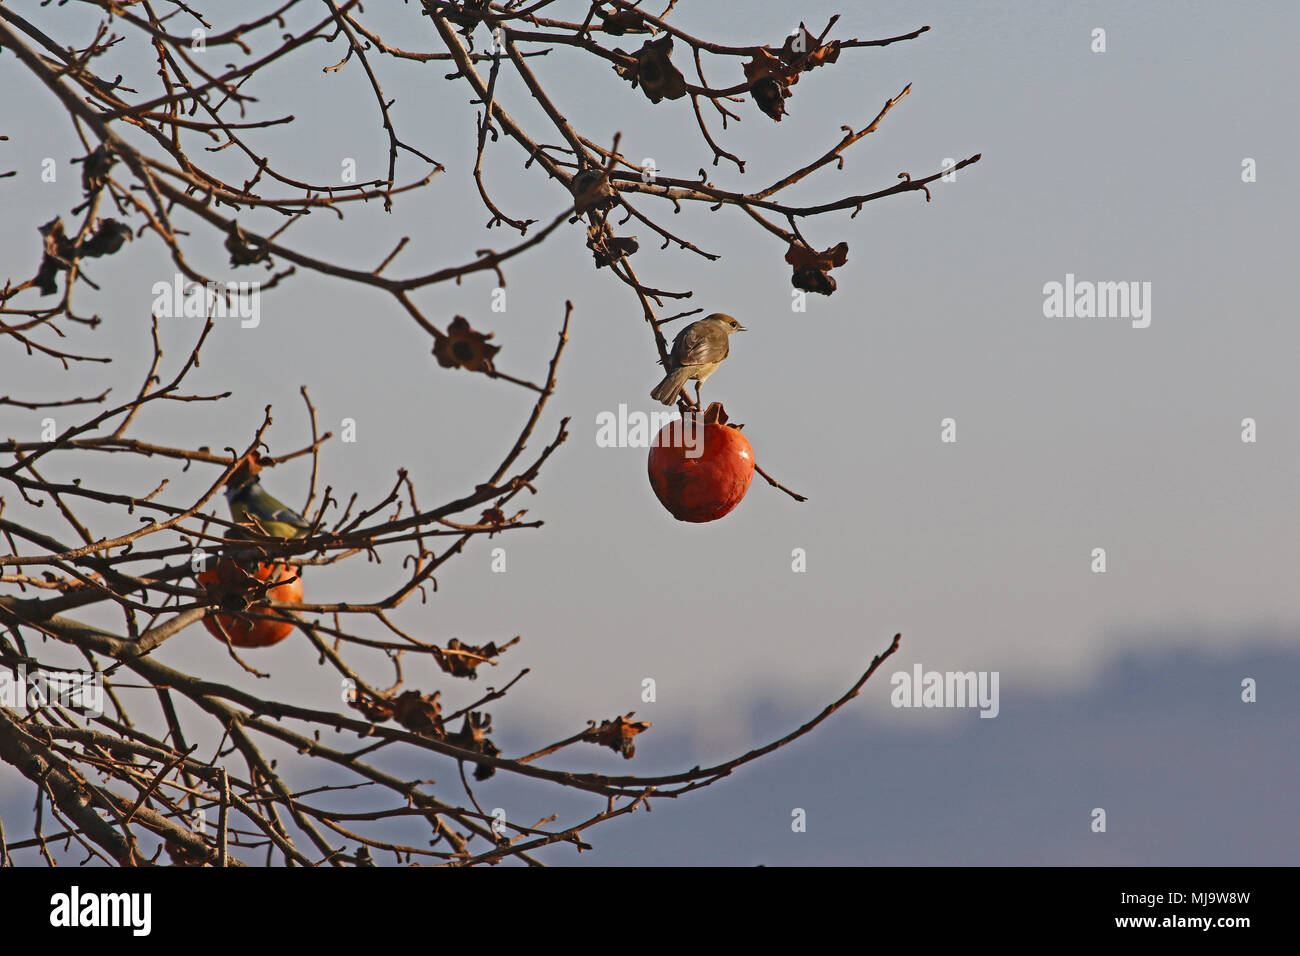 female blackcap with brown cap Latin sylvia atricapilla feeding in a persimmon tree in Italy in winter - Stock Image